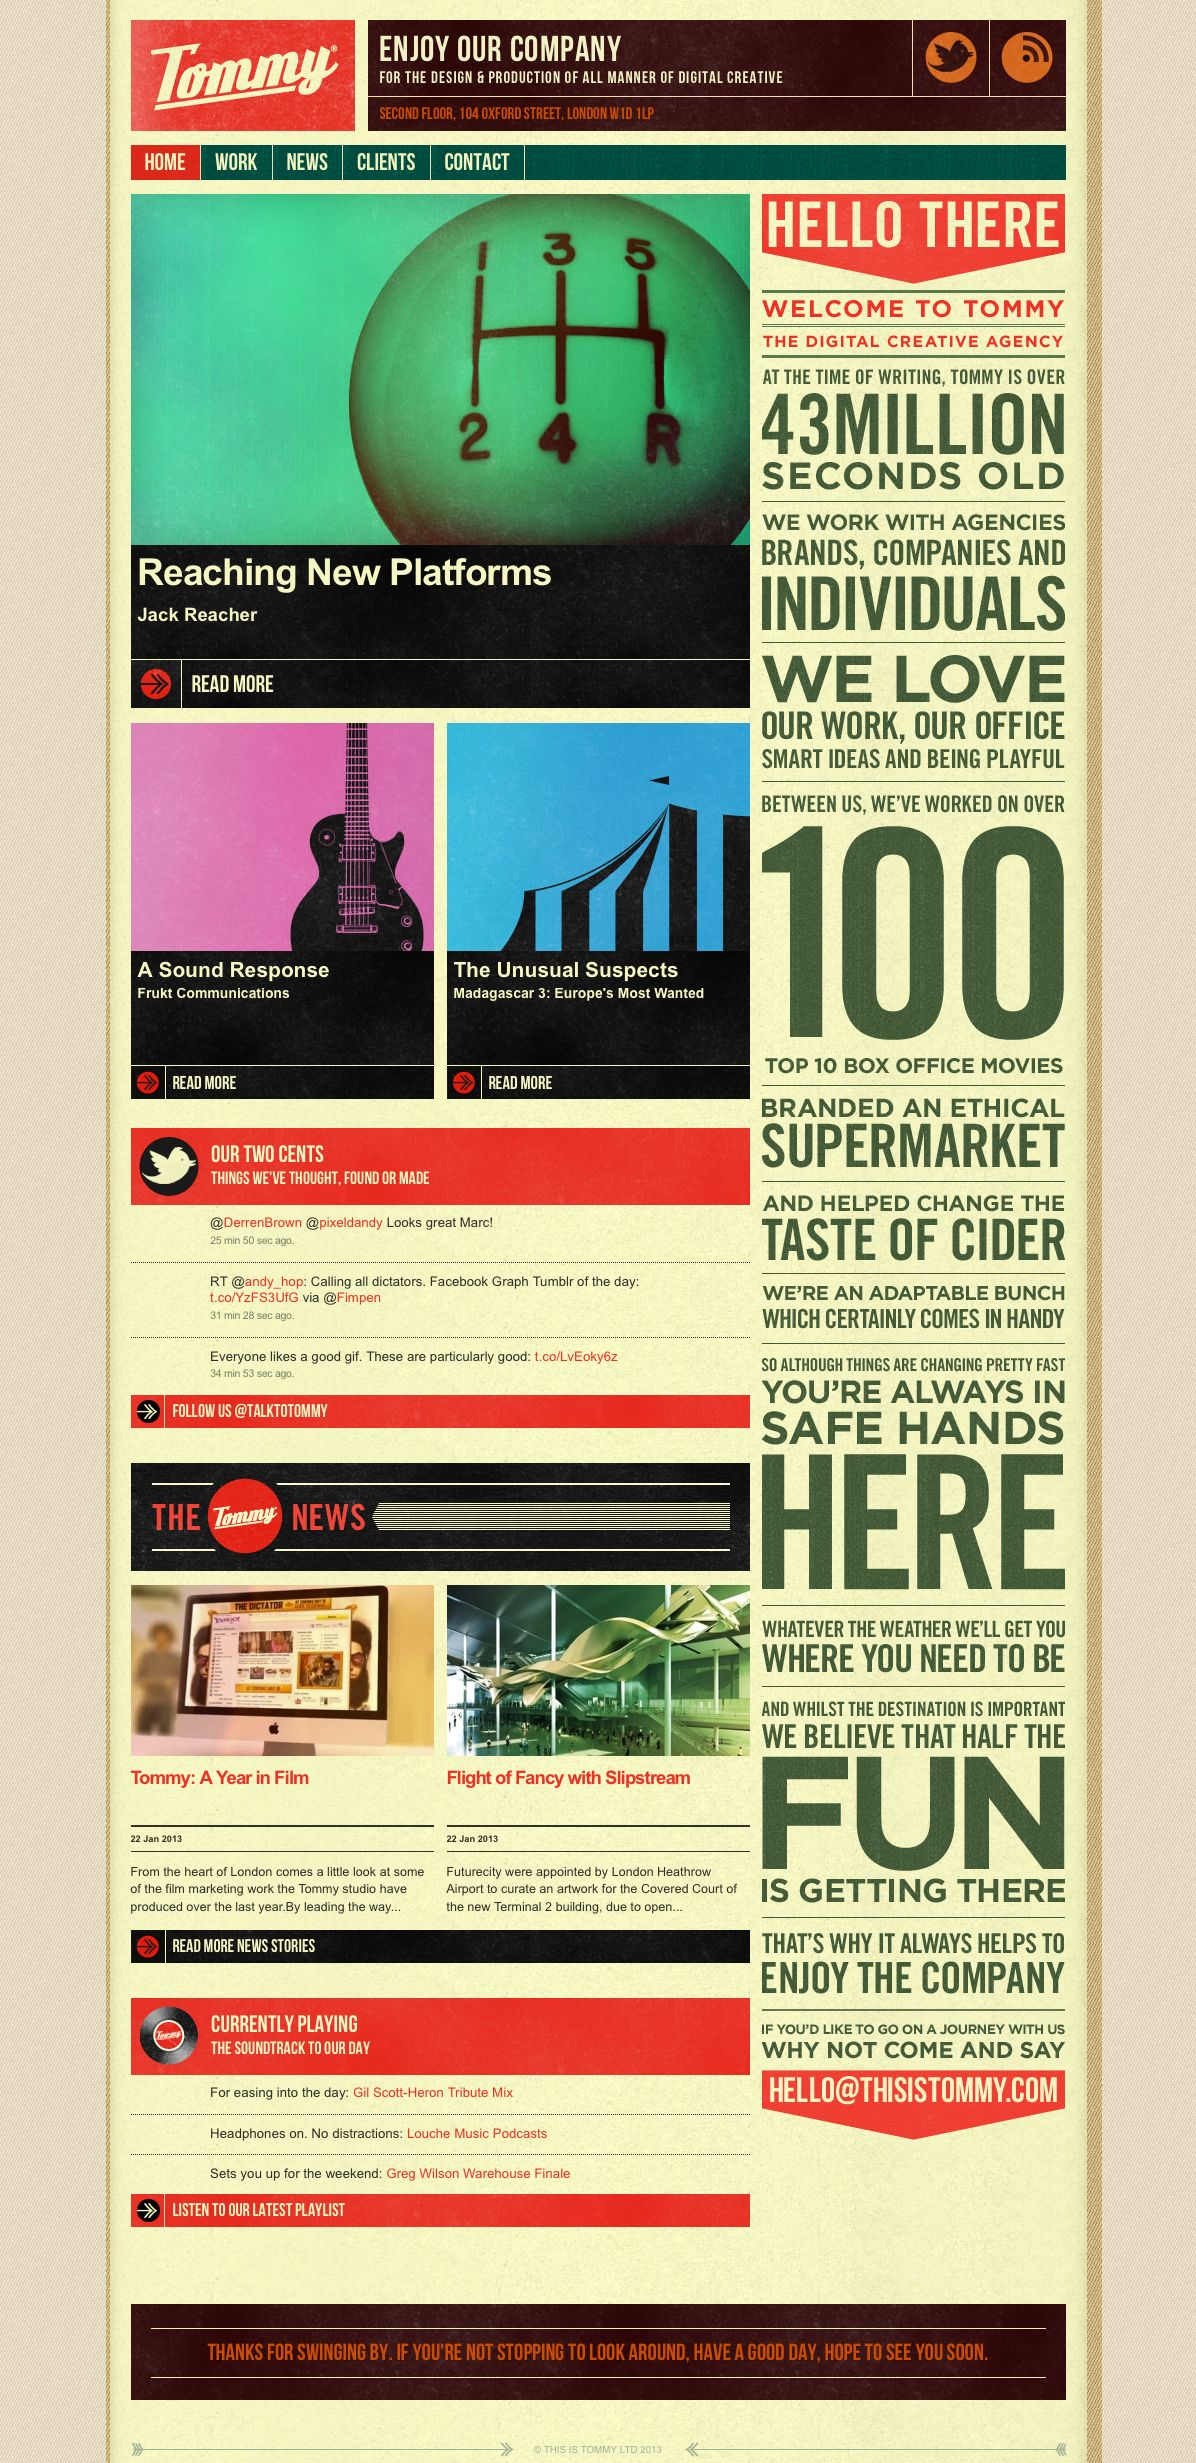 webdesign - http://www.thisistommy.com/